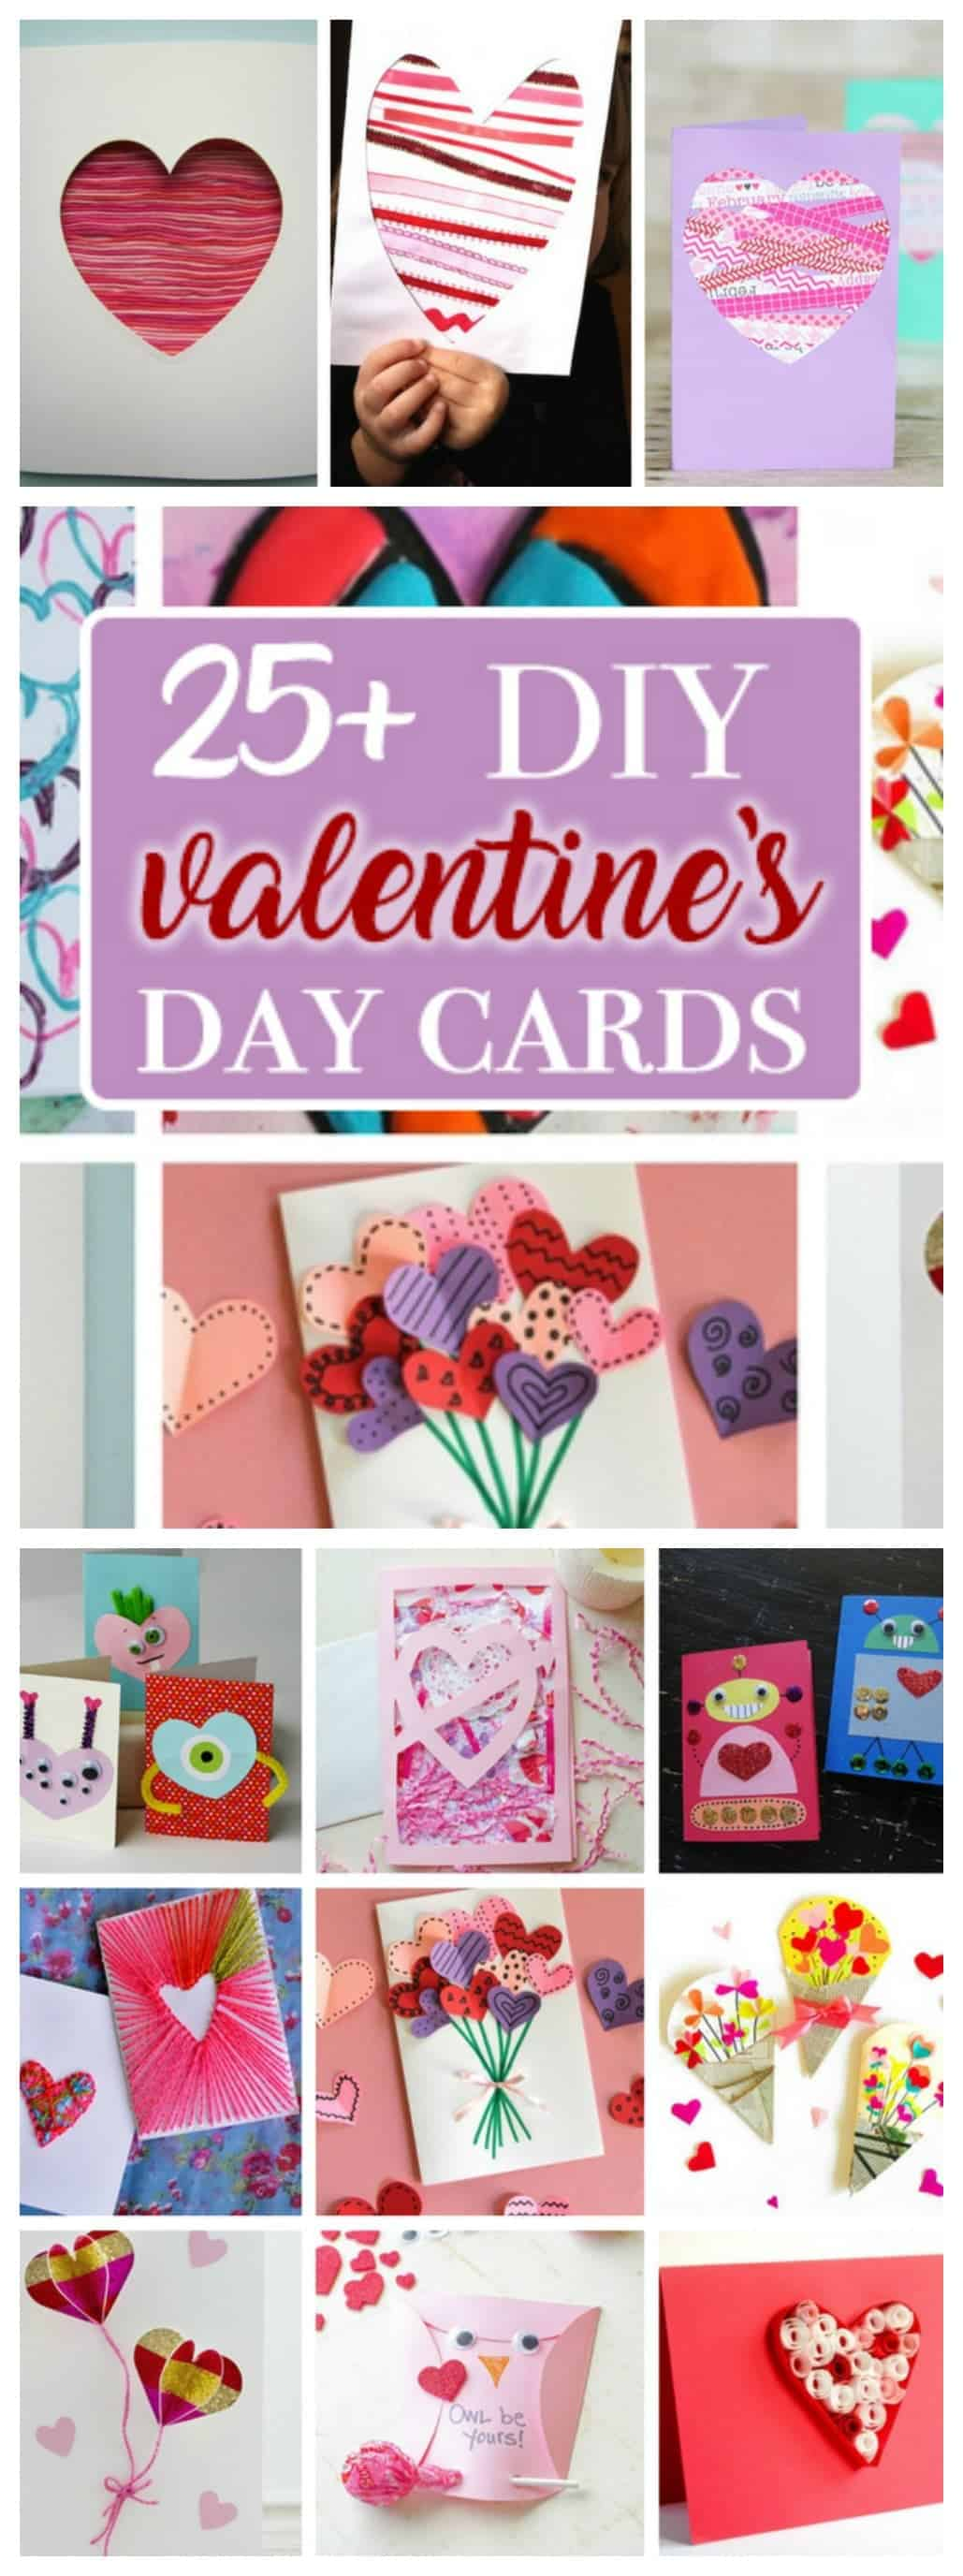 Valentine's Day Cards: create a heartfelt homemade Valentine's Day card!